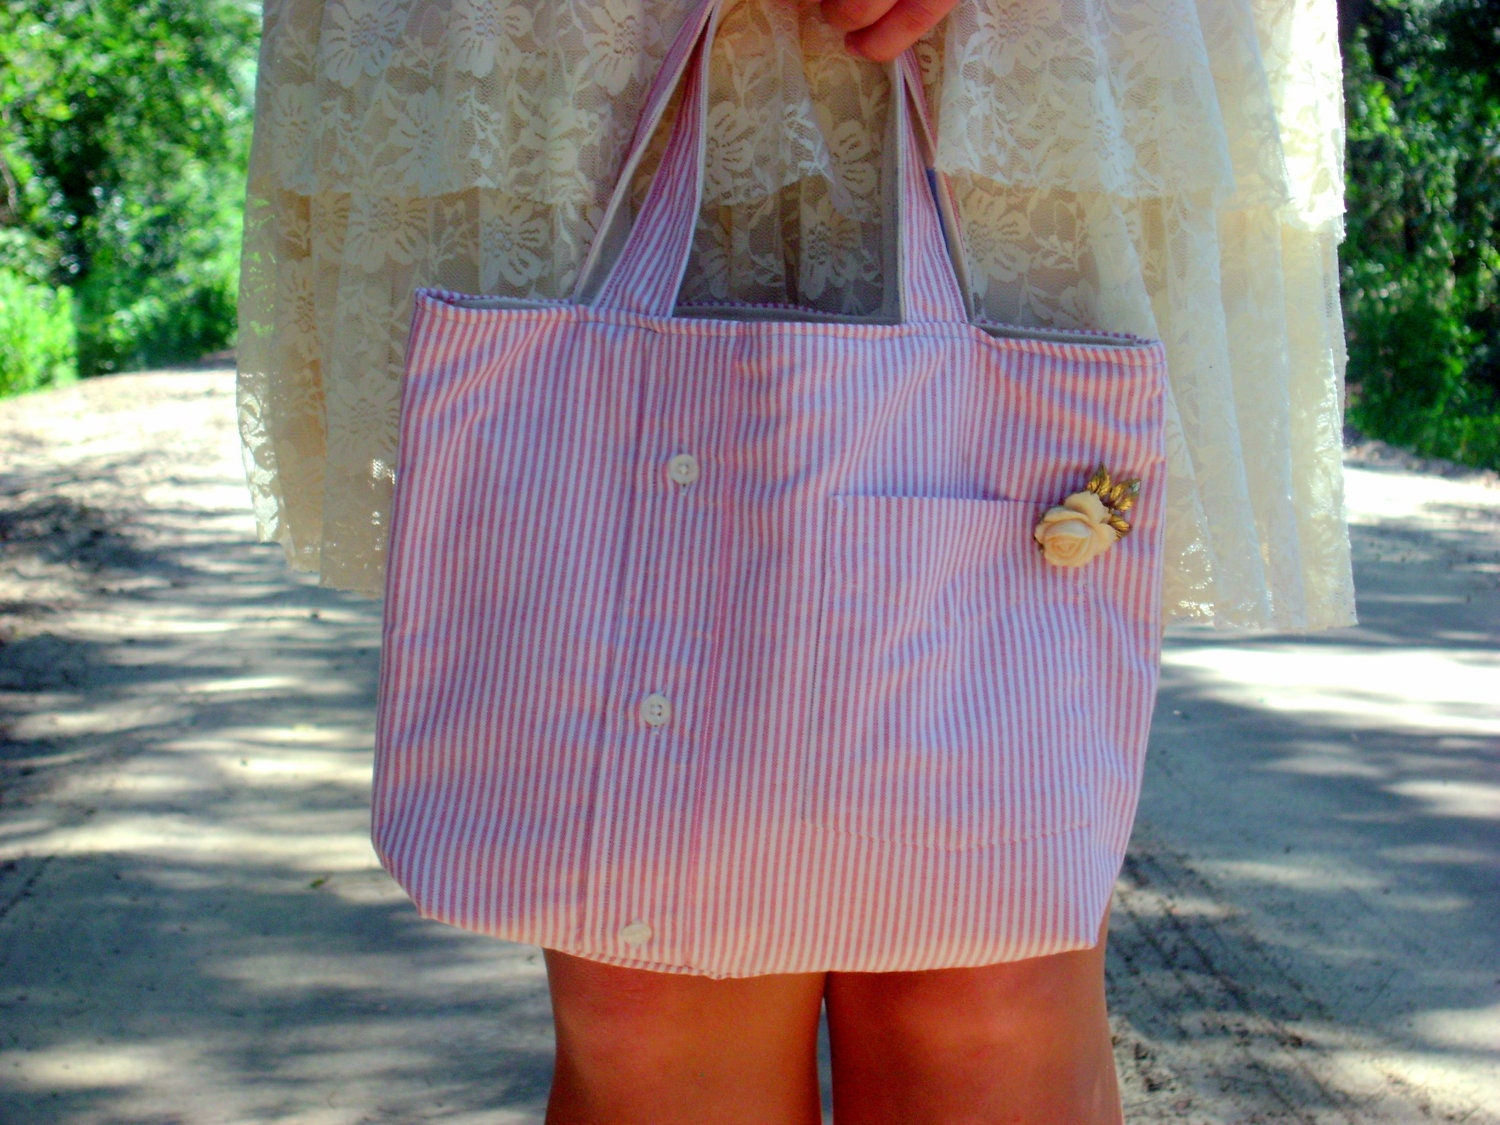 Pink and White Seersucker Shirt Purse with Vintage Broach